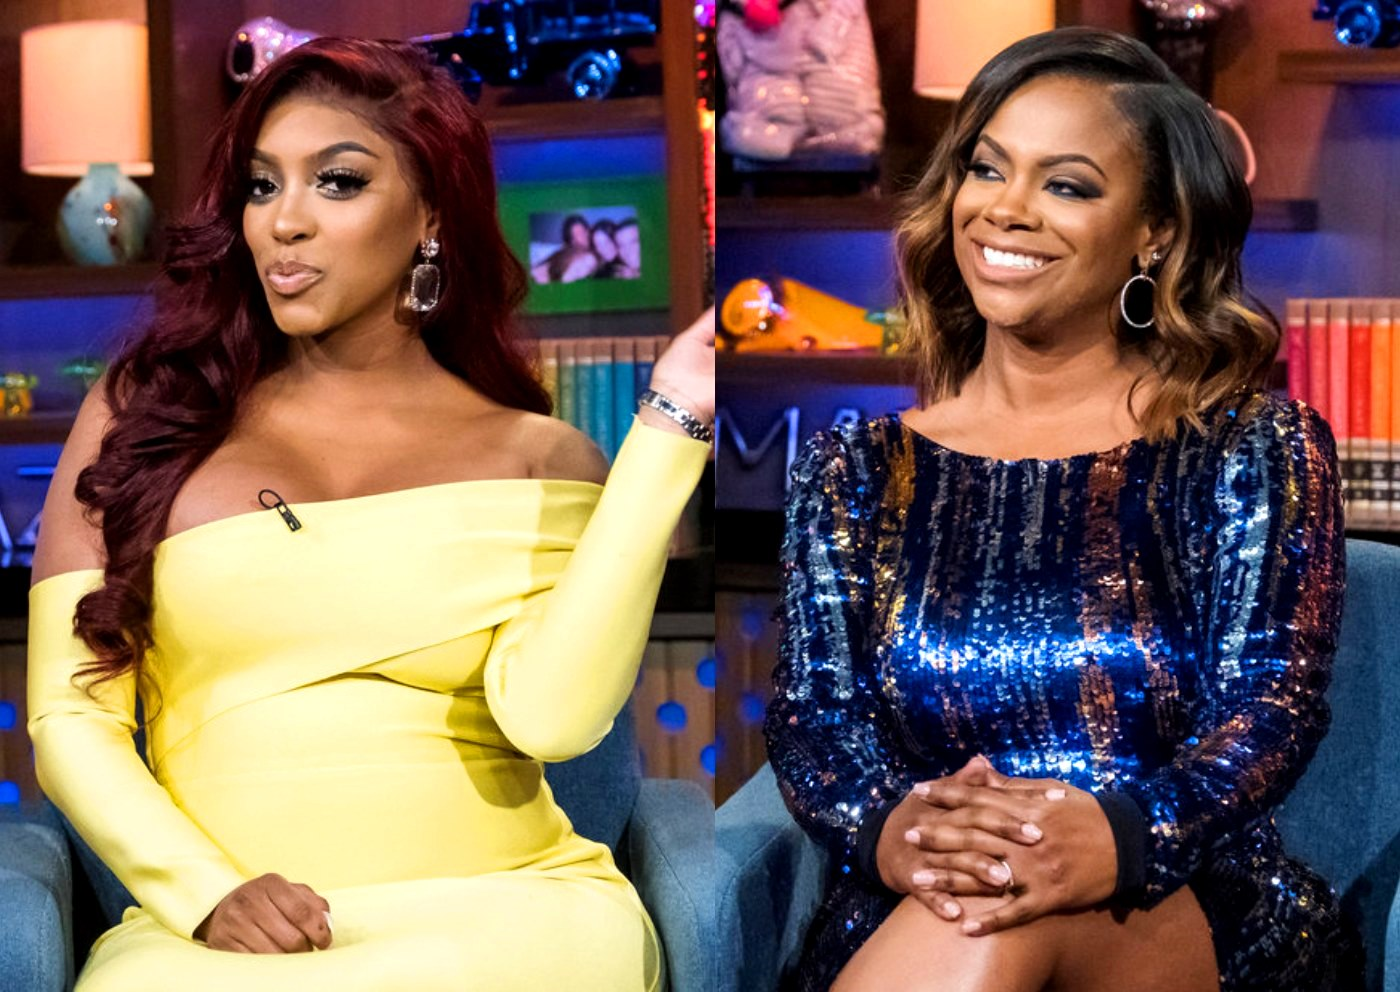 """kandi-burrus-explains-why-she-brought-up-porsha-williams-accusing-her-of-rape-during-the-last-rhoa-episode"""